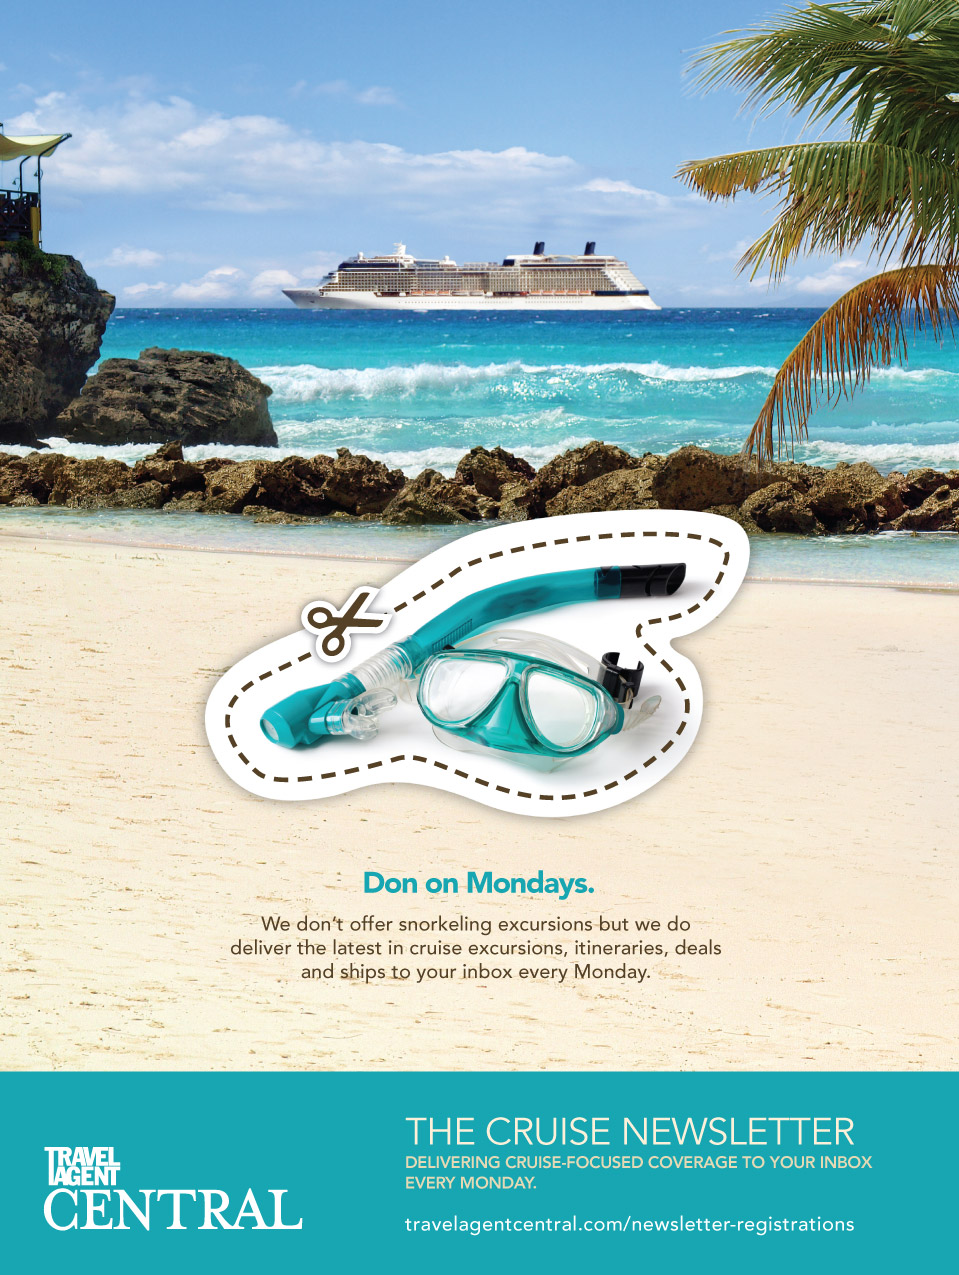 The Cruise Newsletter